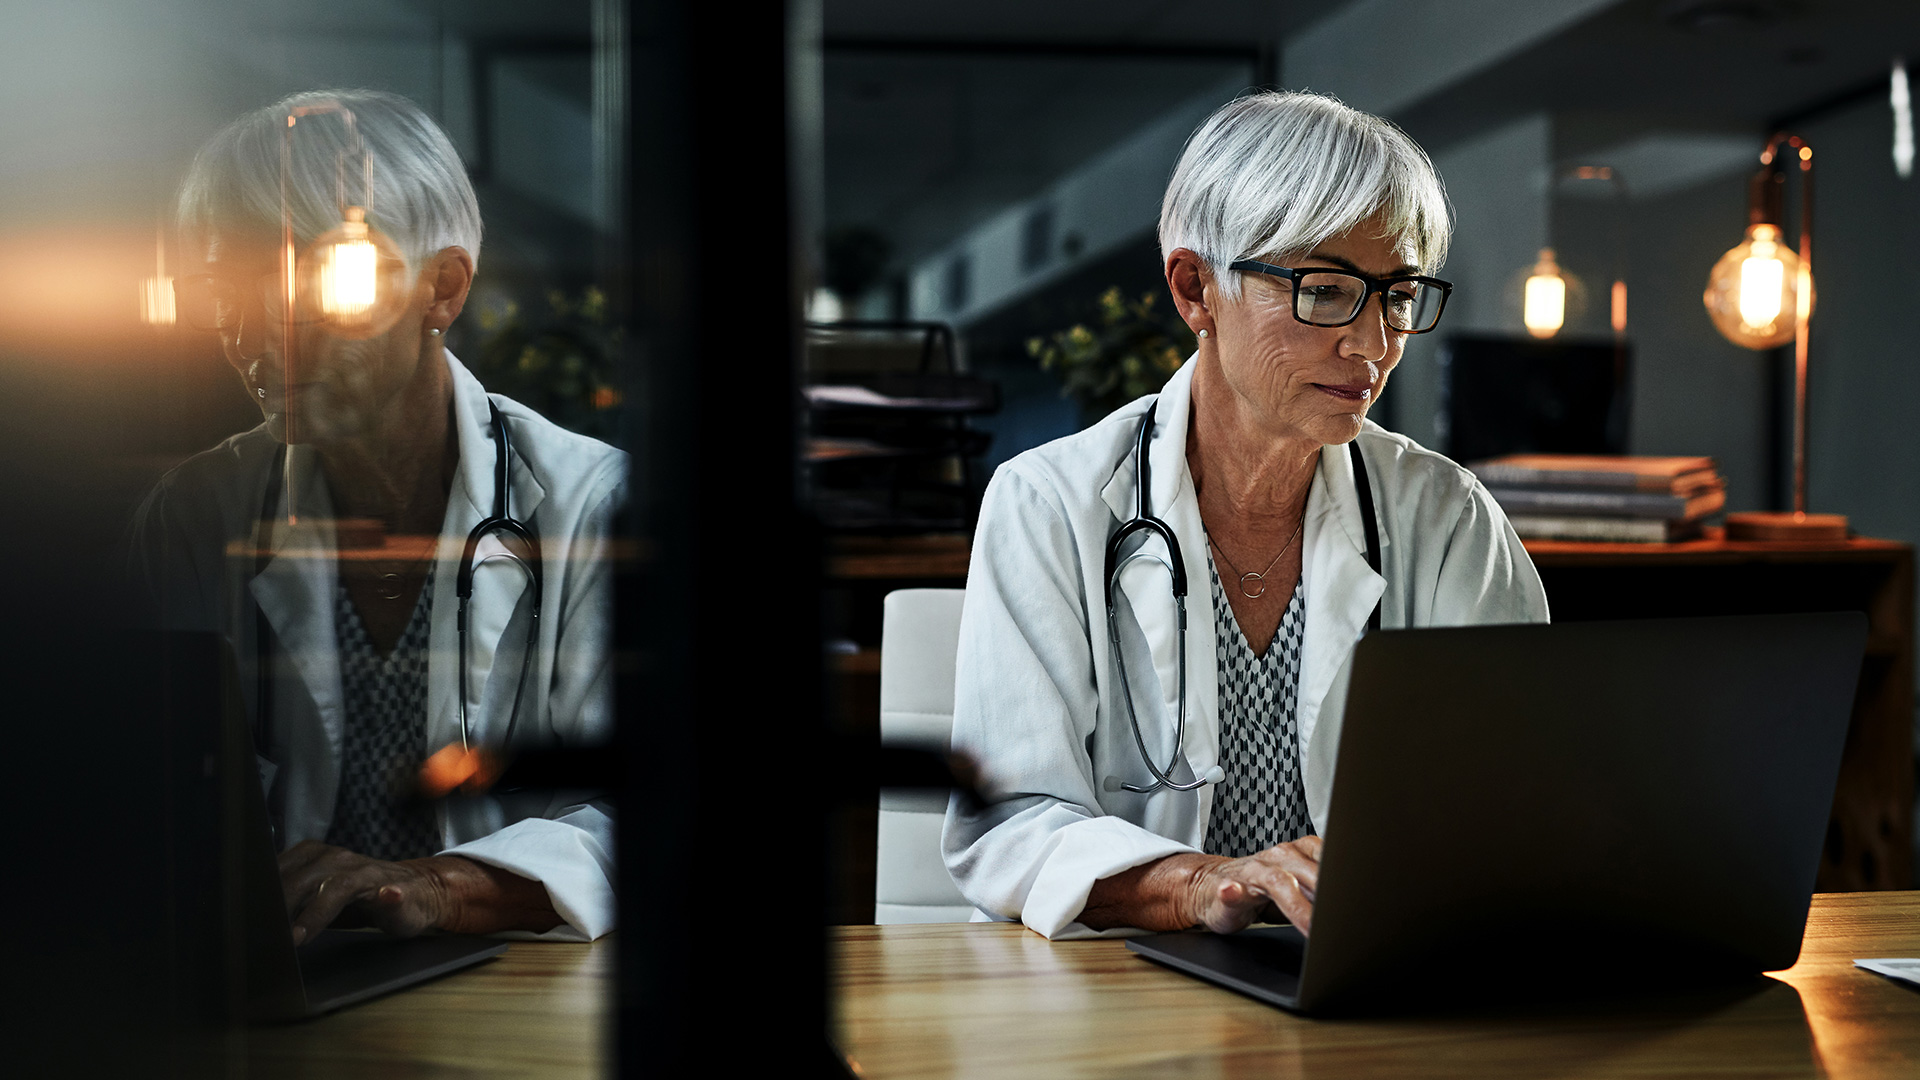 Woman doctor working on laptop at desk